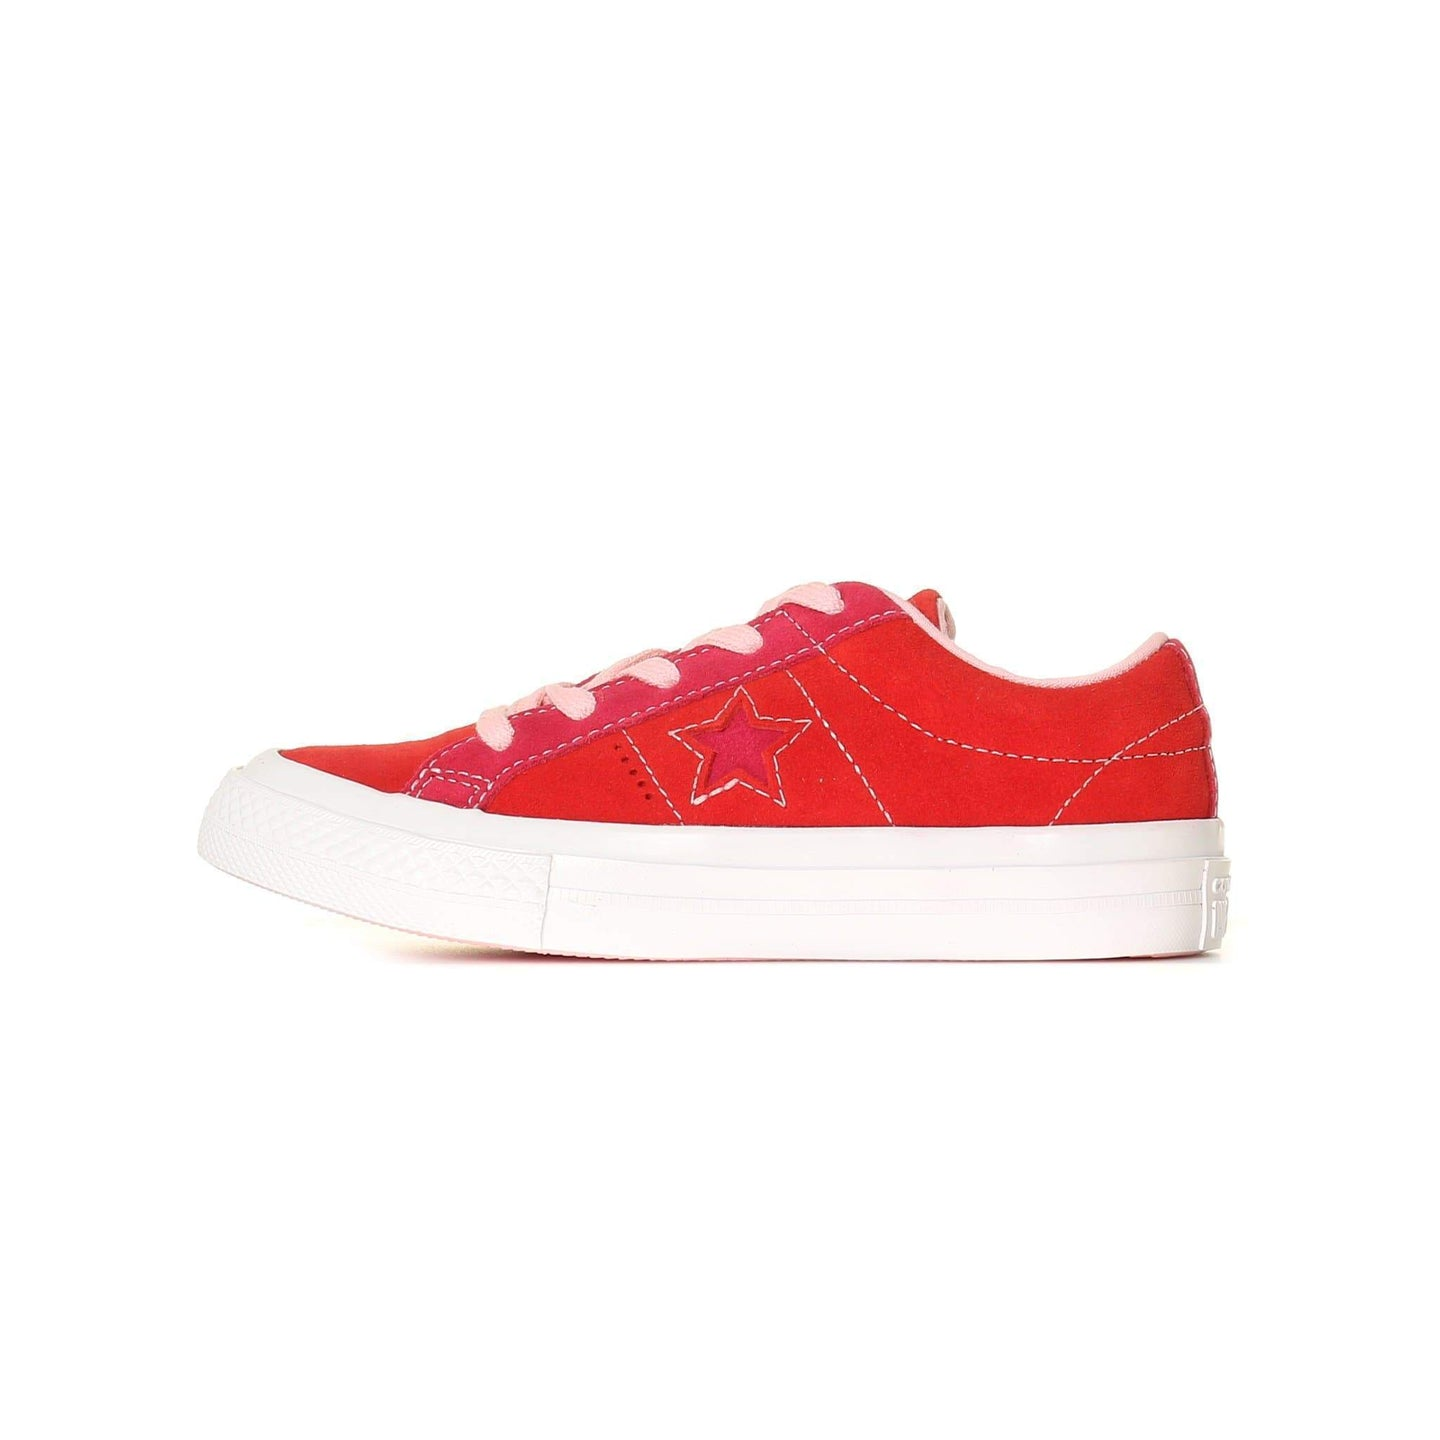 Converse Kids One Star Carnival Suede - Enamel Red / Pink Pop C11 361806CC11 888755884881 Converse Trainers